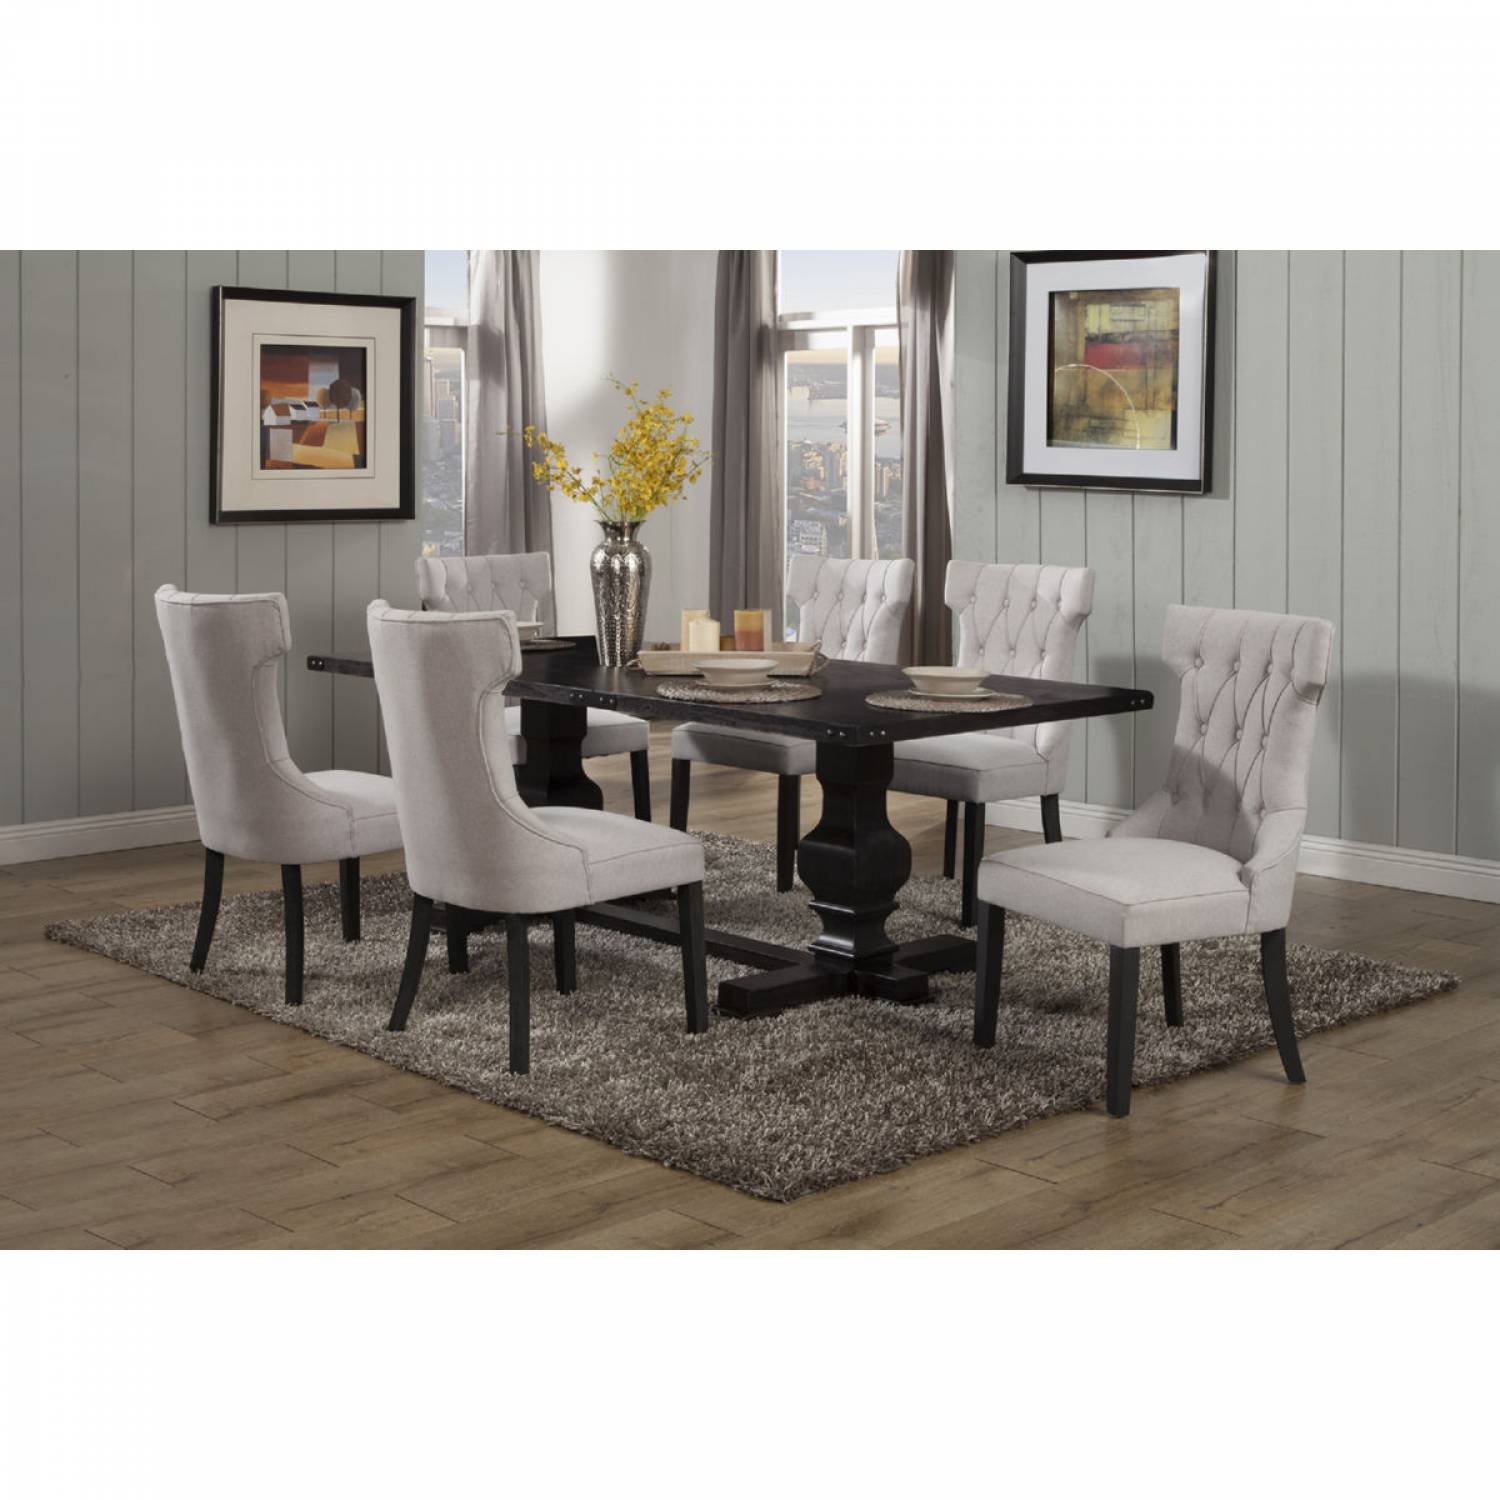 Admirable 3868 Alpine Furniture 3868 01 Manchester 7Pc Sets Dining Table 6 Chairs Short Links Chair Design For Home Short Linksinfo